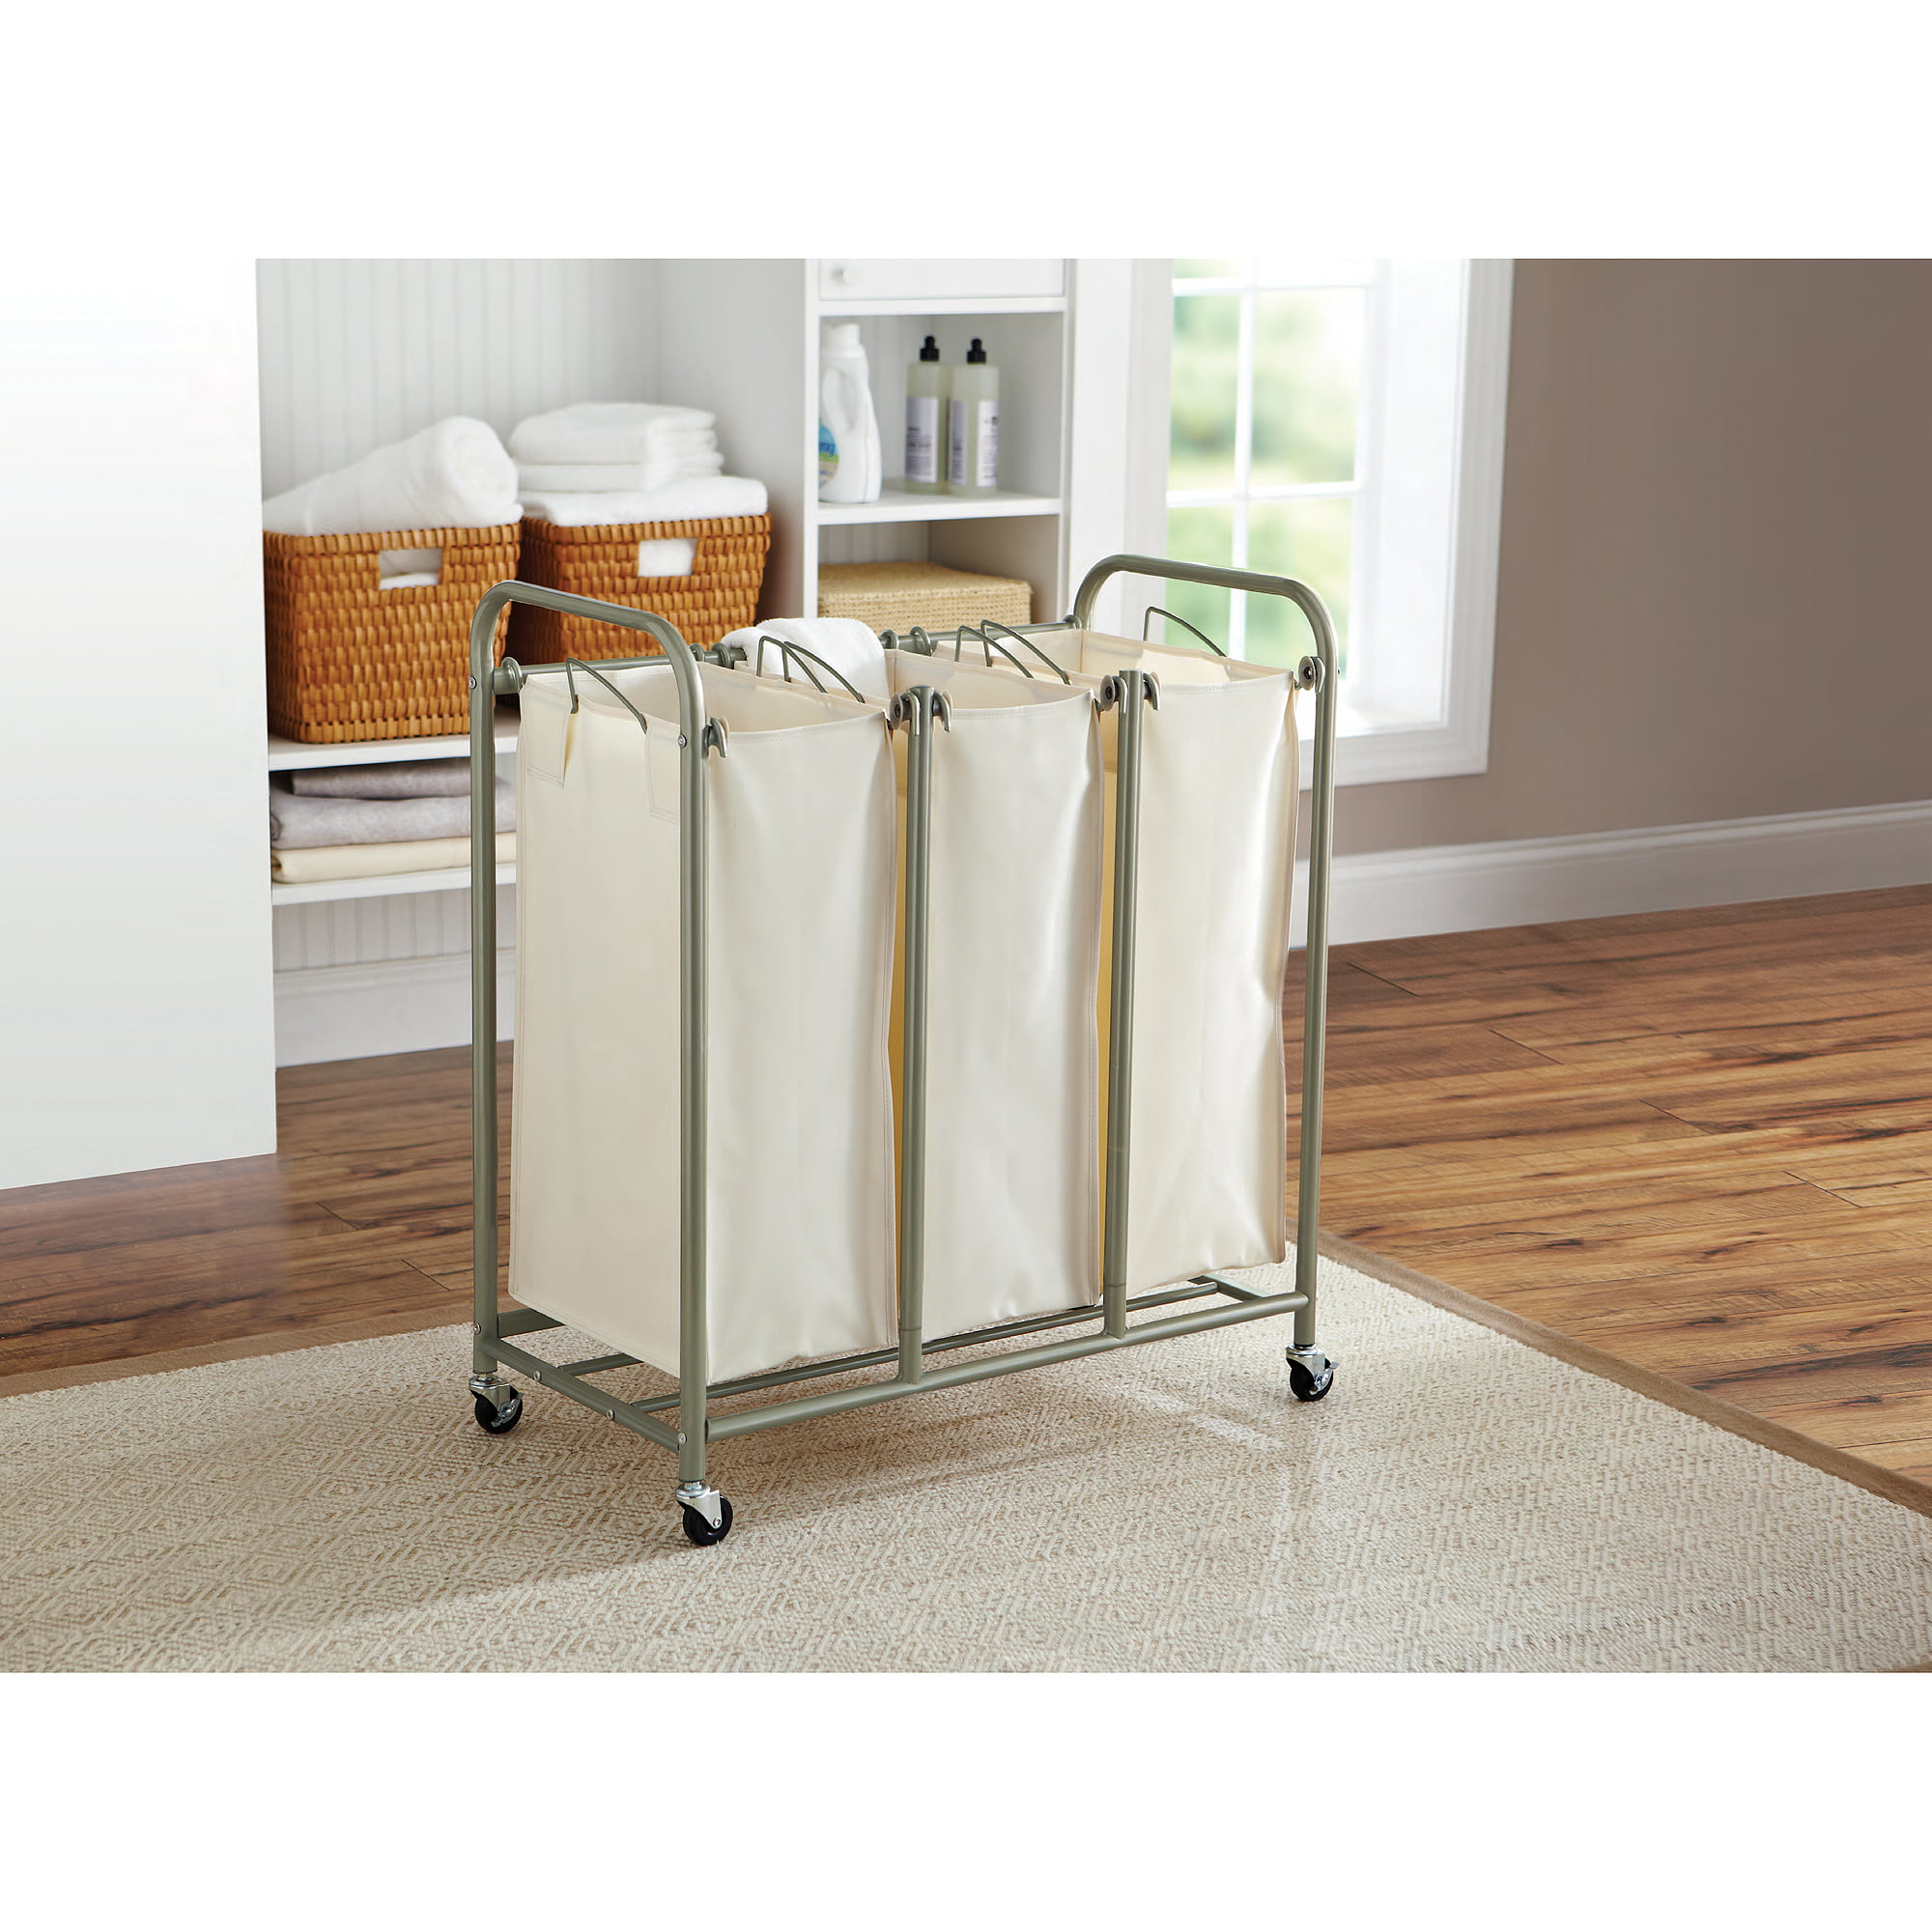 Better Homes And Gardens 3 Bag Laundry Sorter Brown Ivory Image 1 Of